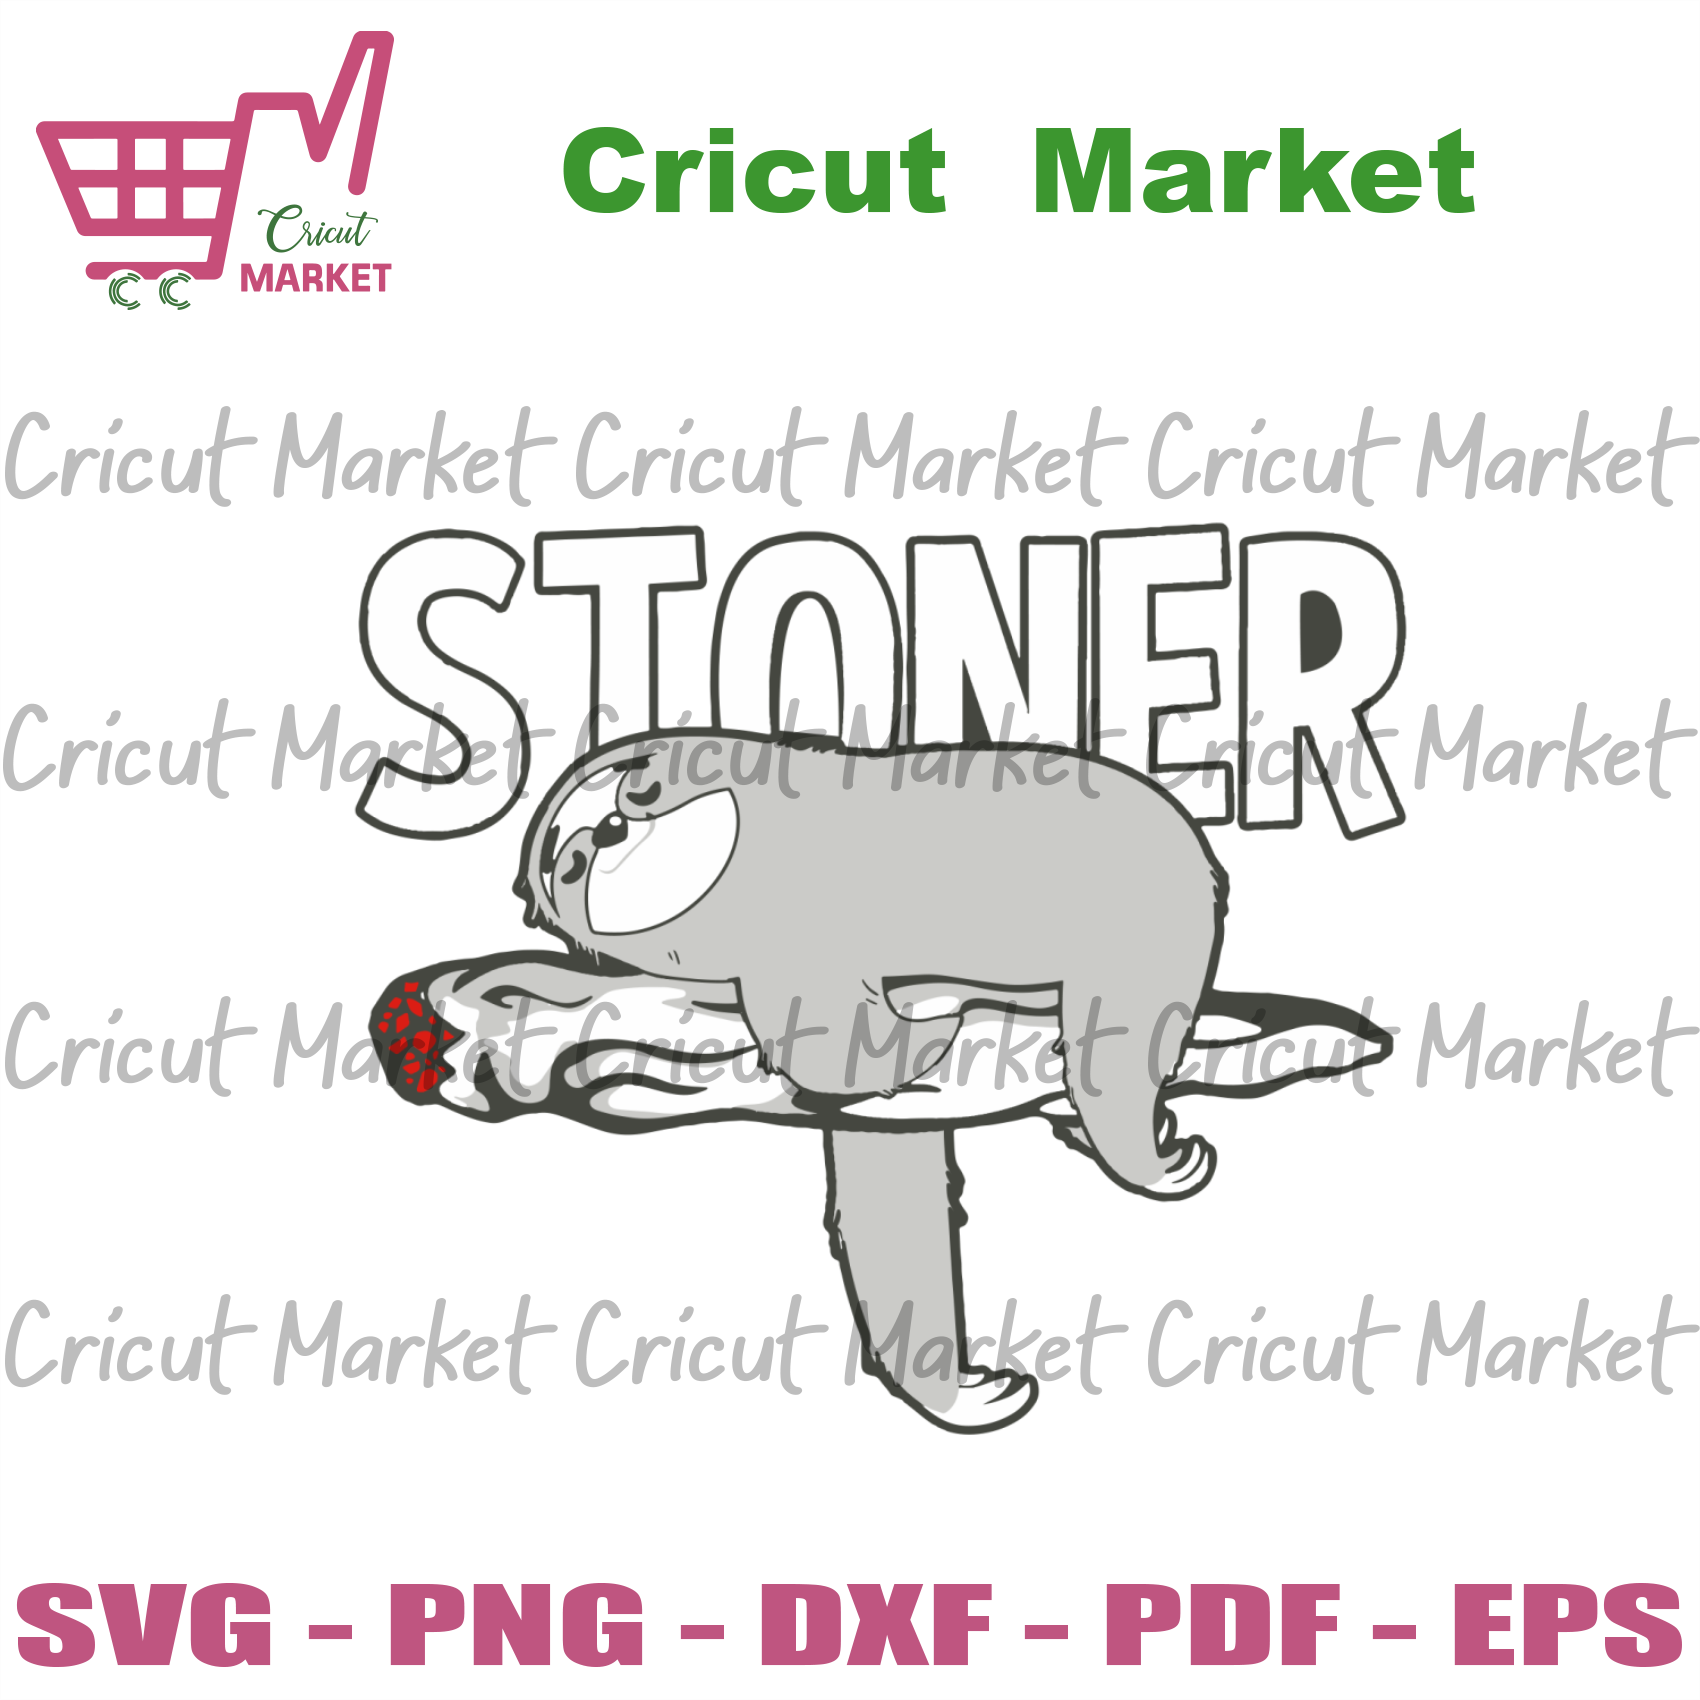 Stoner Sloth Svg, Trending Svg, Sloth Svg, Cannabis Svg, Cannabis Weed Svg, Weed Svg, Lazy Sloth Svg, Cute Sloth, SLoth Gifts, Marijuana Svg, Cannabis Lovers, Smoke Weed svg, High Svg, Blunt